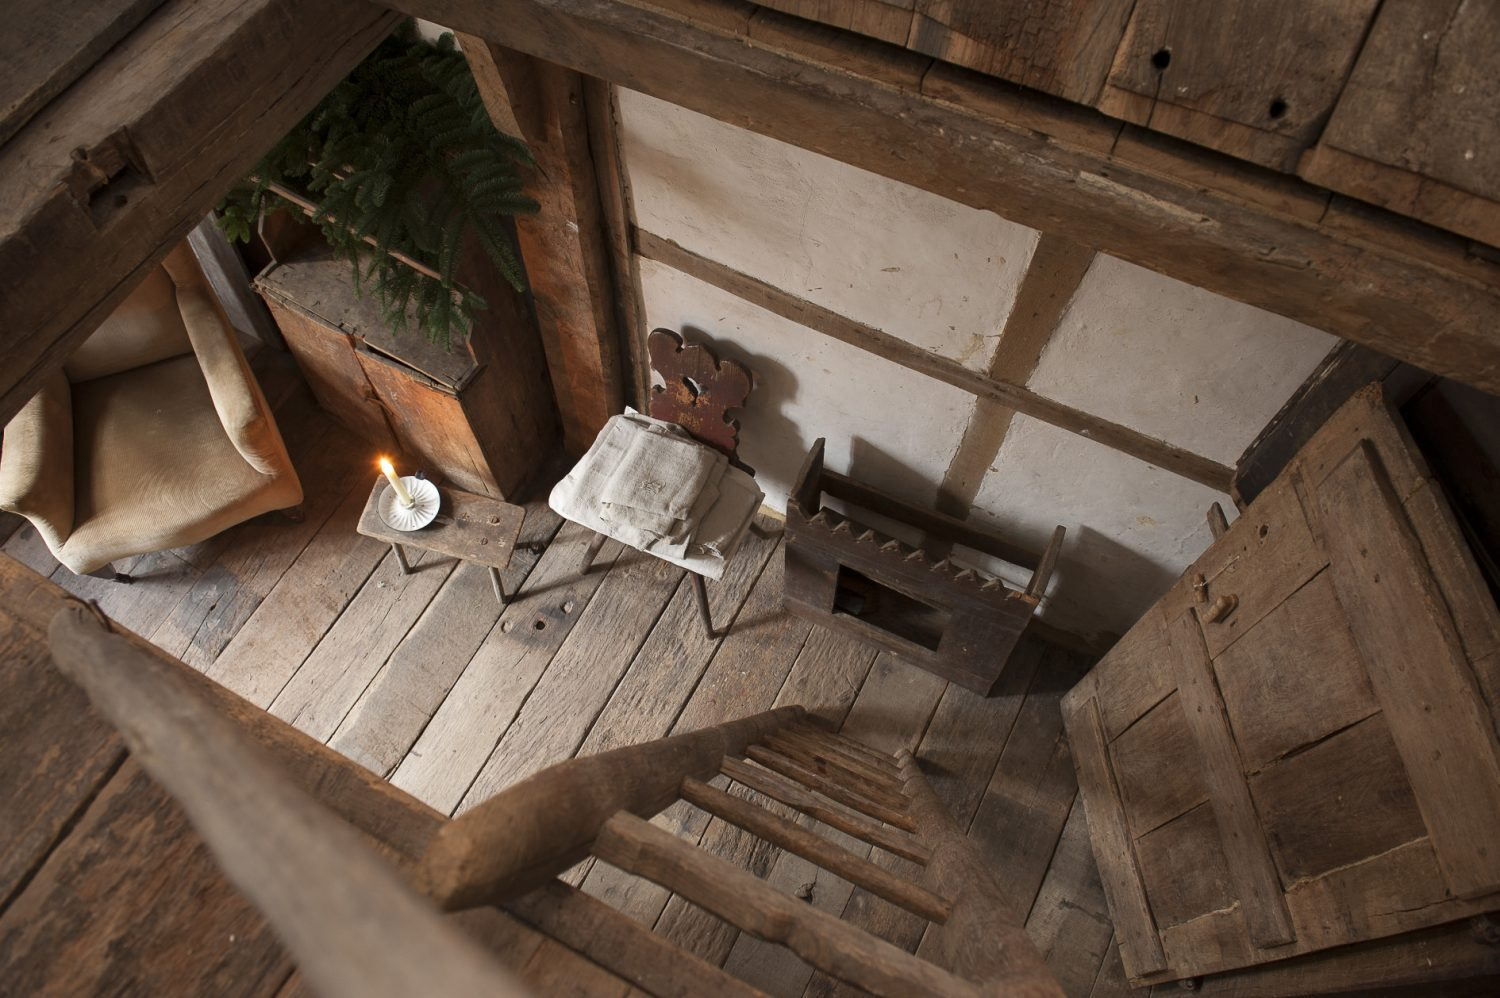 A trap door in the floor of the galleried attic bedroom opens to reveal the room below